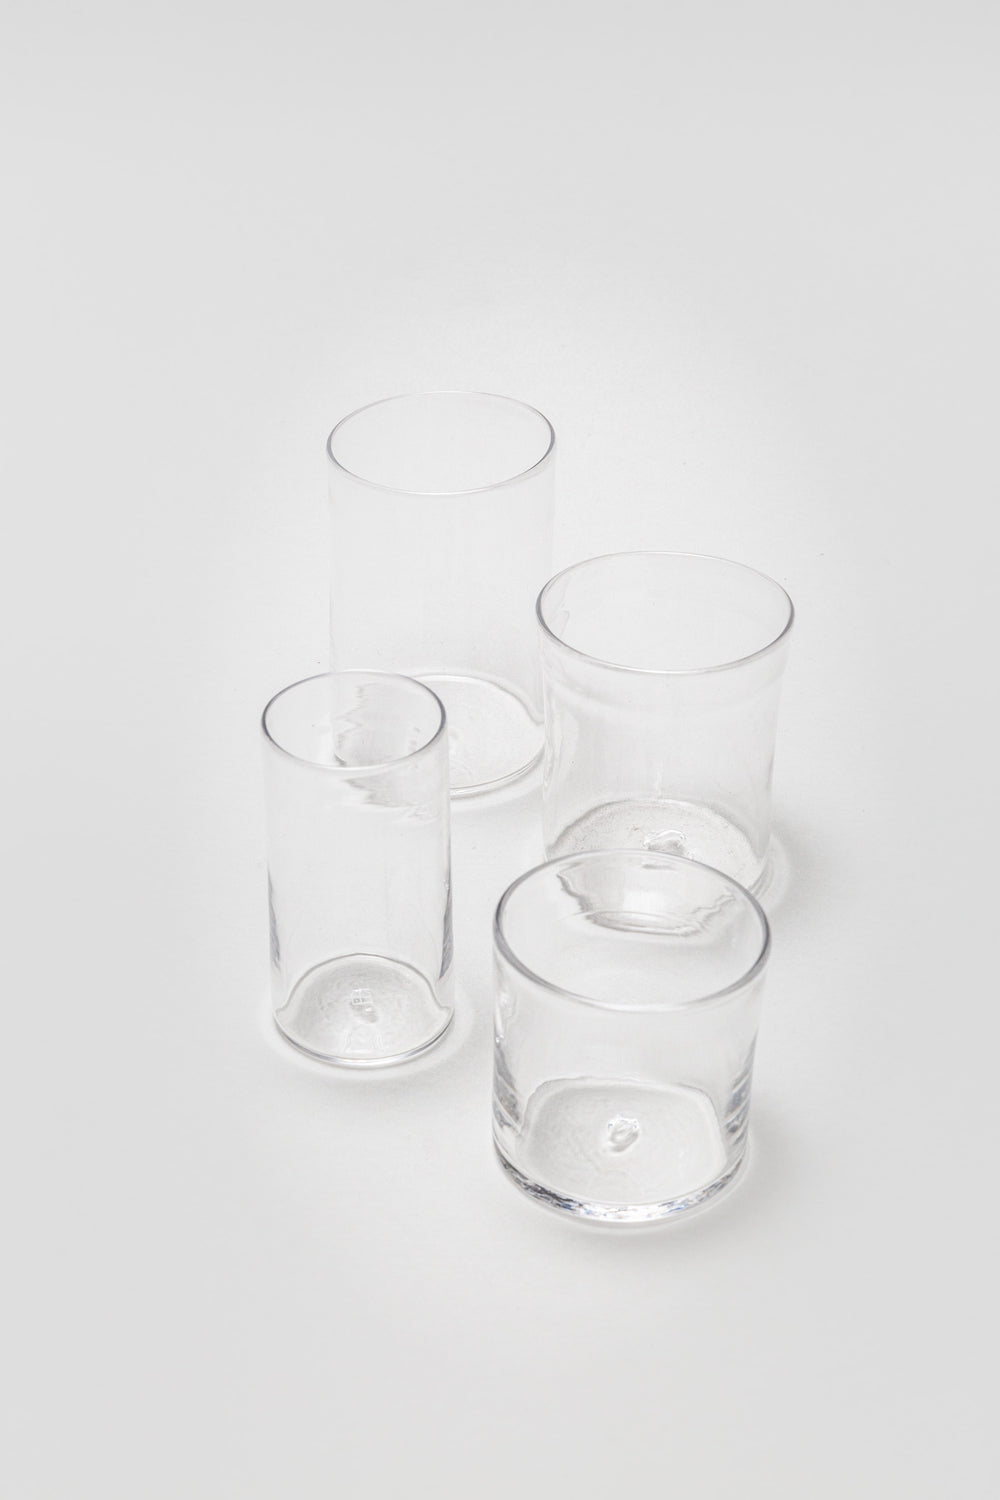 Extra Small Drinking Glass by Yoko Yamano